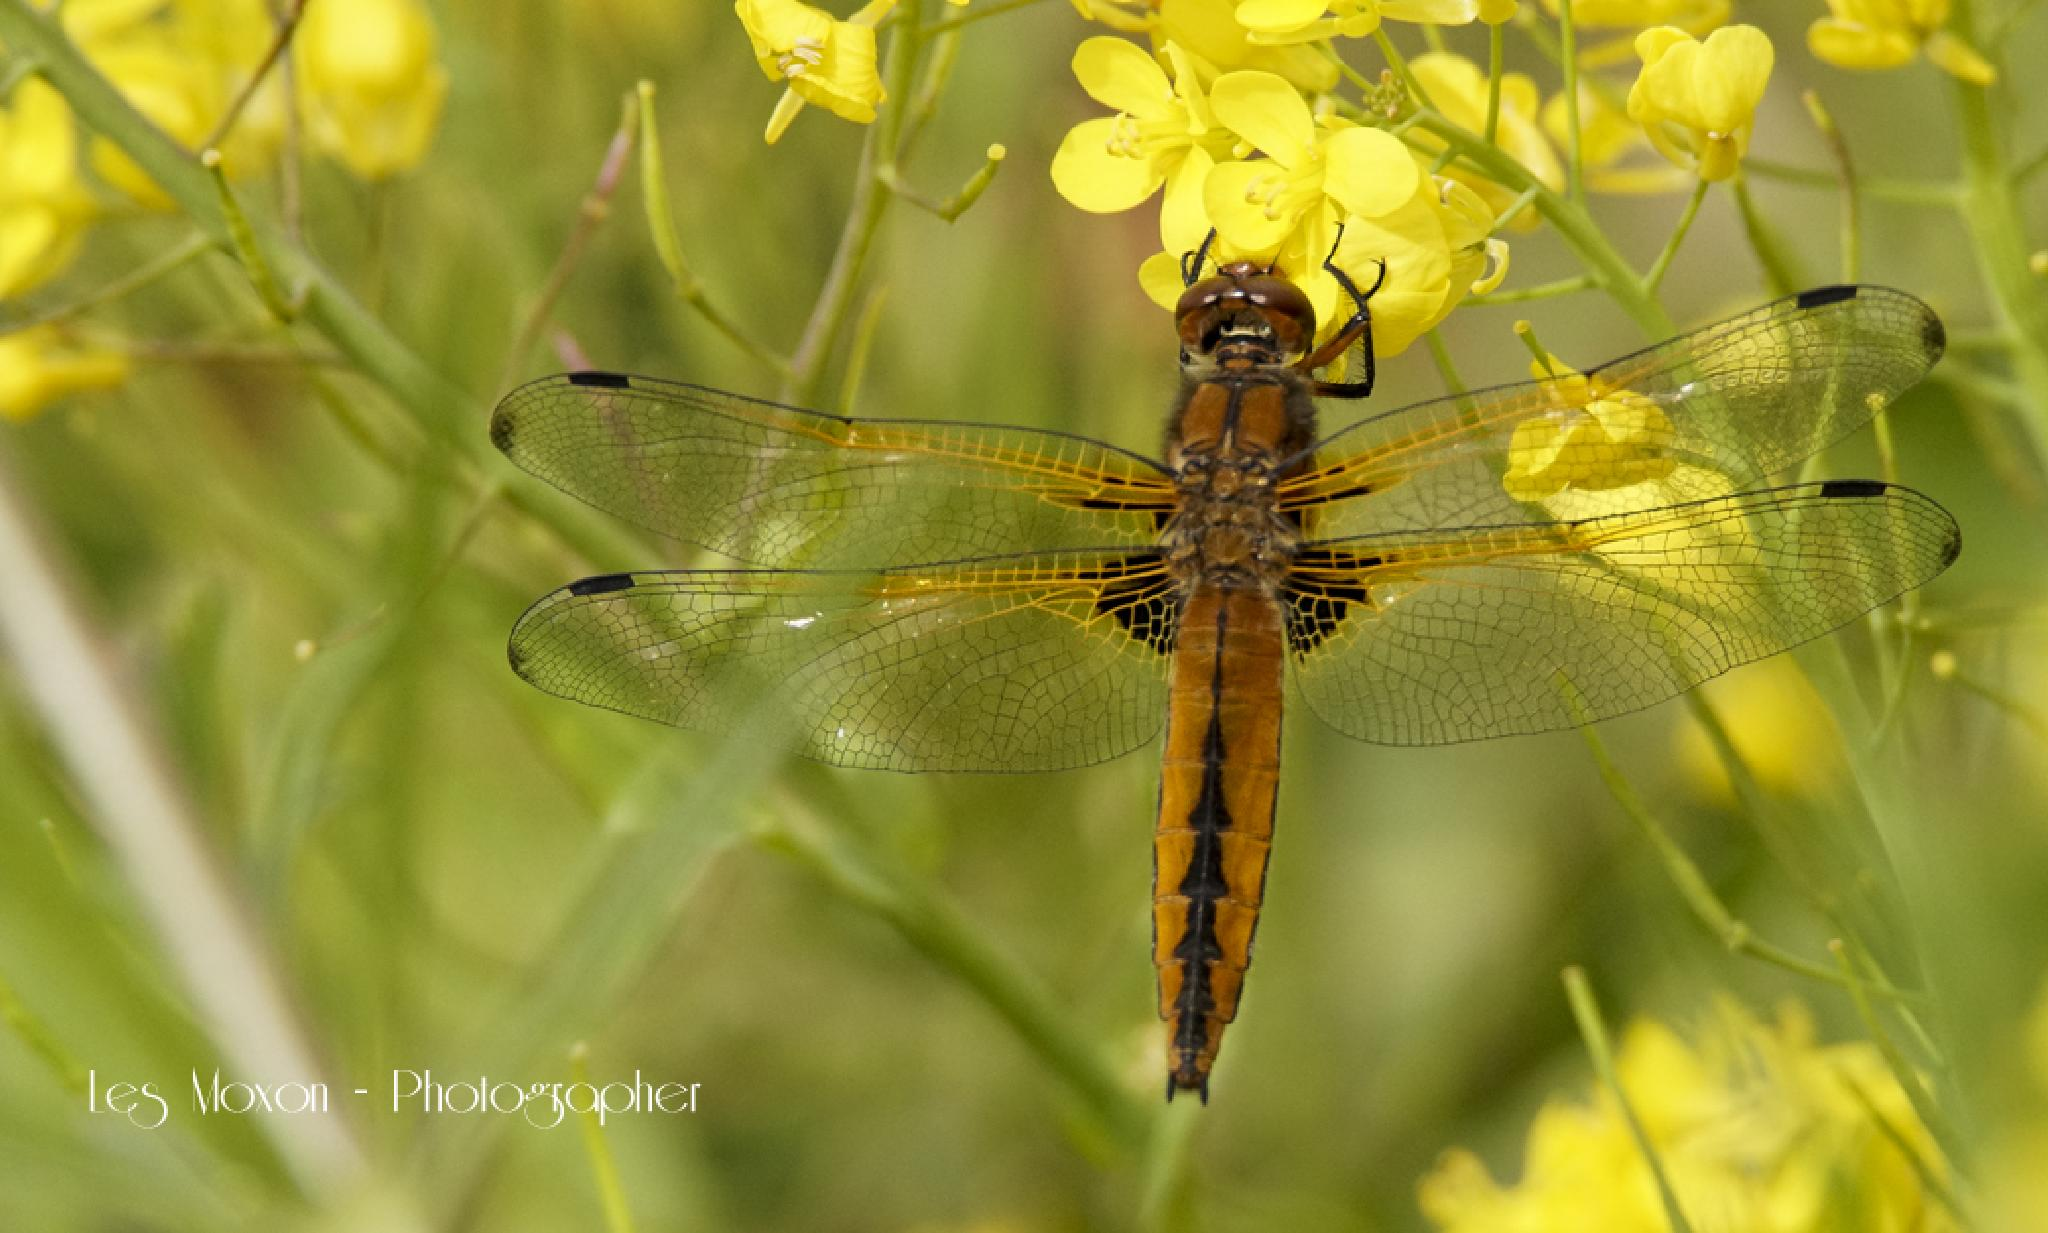 4 spot in the Rape by Les Moxon Photography